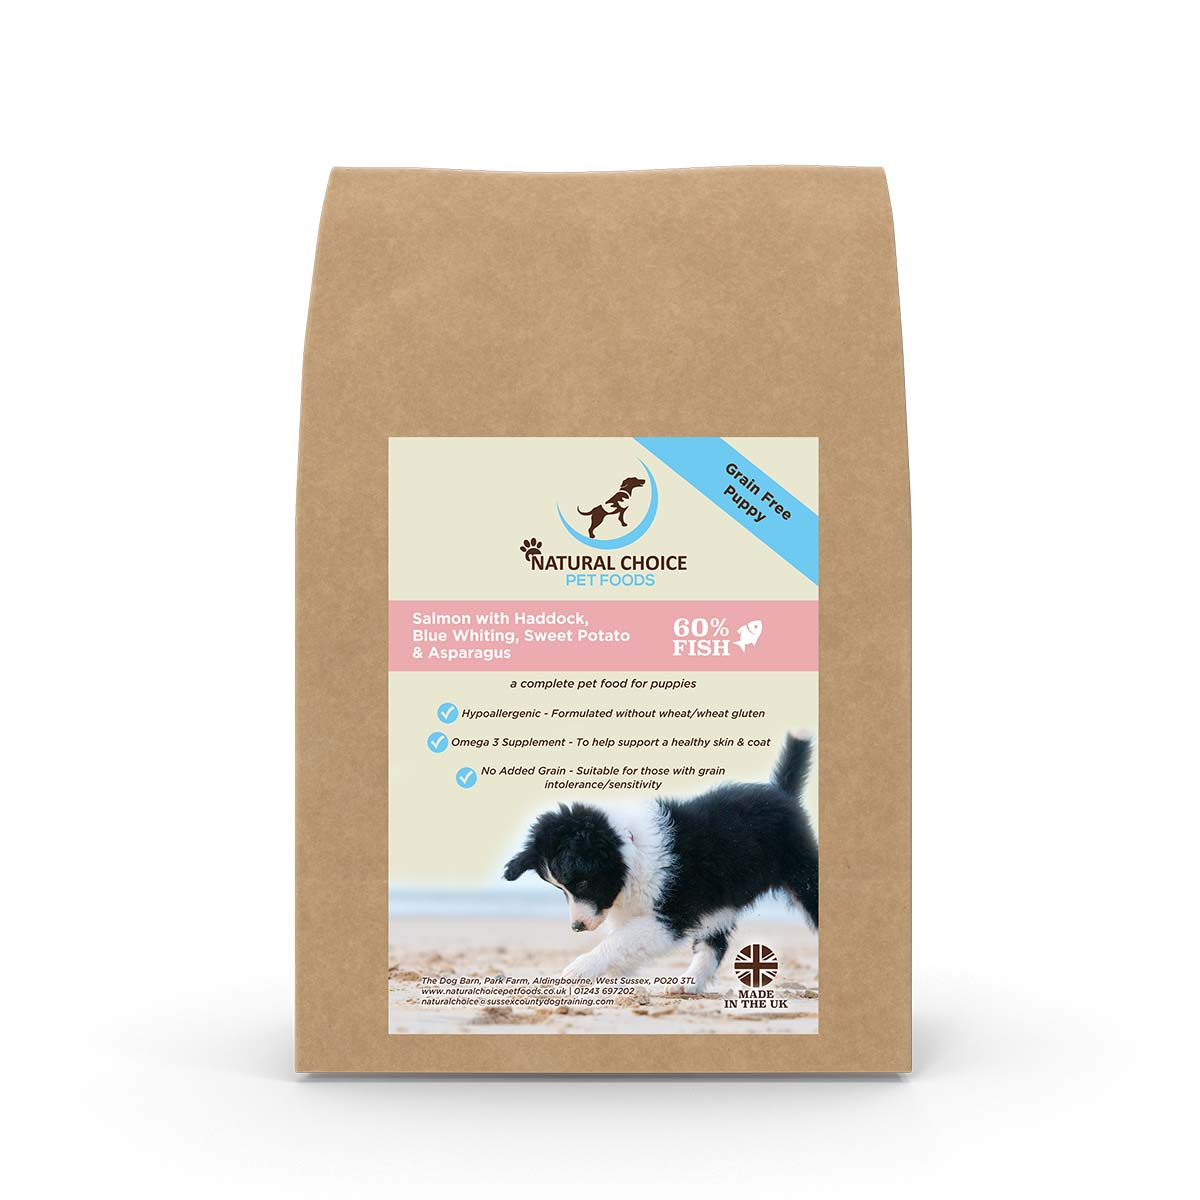 Natural Choice Puppy Food Salmon, Haddock and Blue Whiting